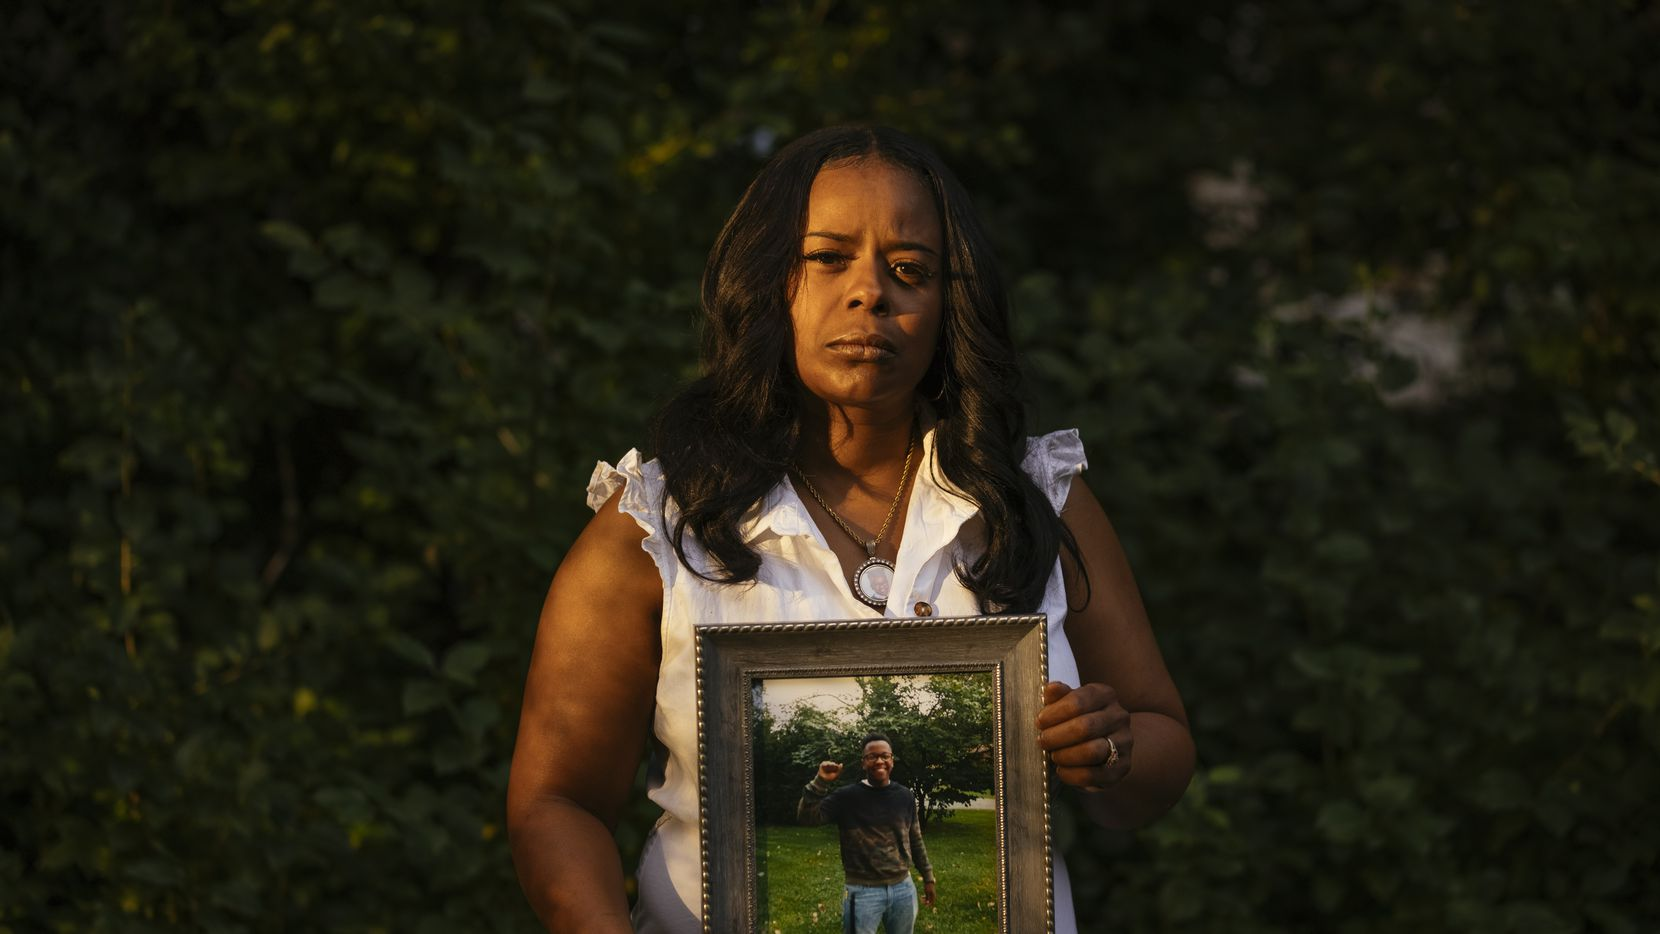 Rafiah Maxie holds a photo of her son, Jamal Clay, outside her home on July 9, 2021, in Olympia Fields, Illinois. Maxie s son, Clay, died by suicide in May 2020. Research shows that while suicide rates have dropped for white Americans in recent years, it is a growing crisis for communities of color.